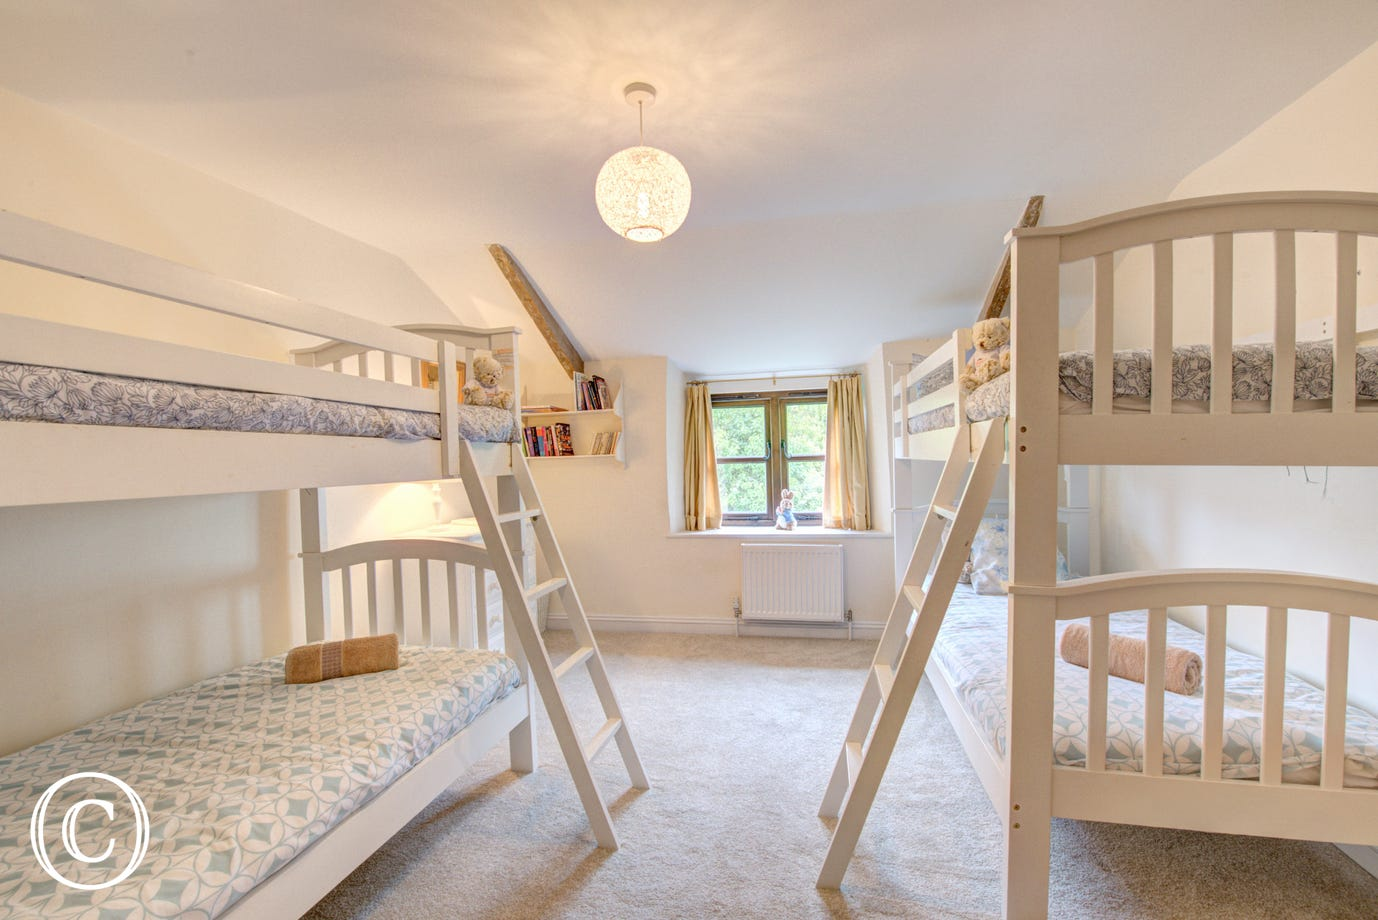 The children will love the bunk room